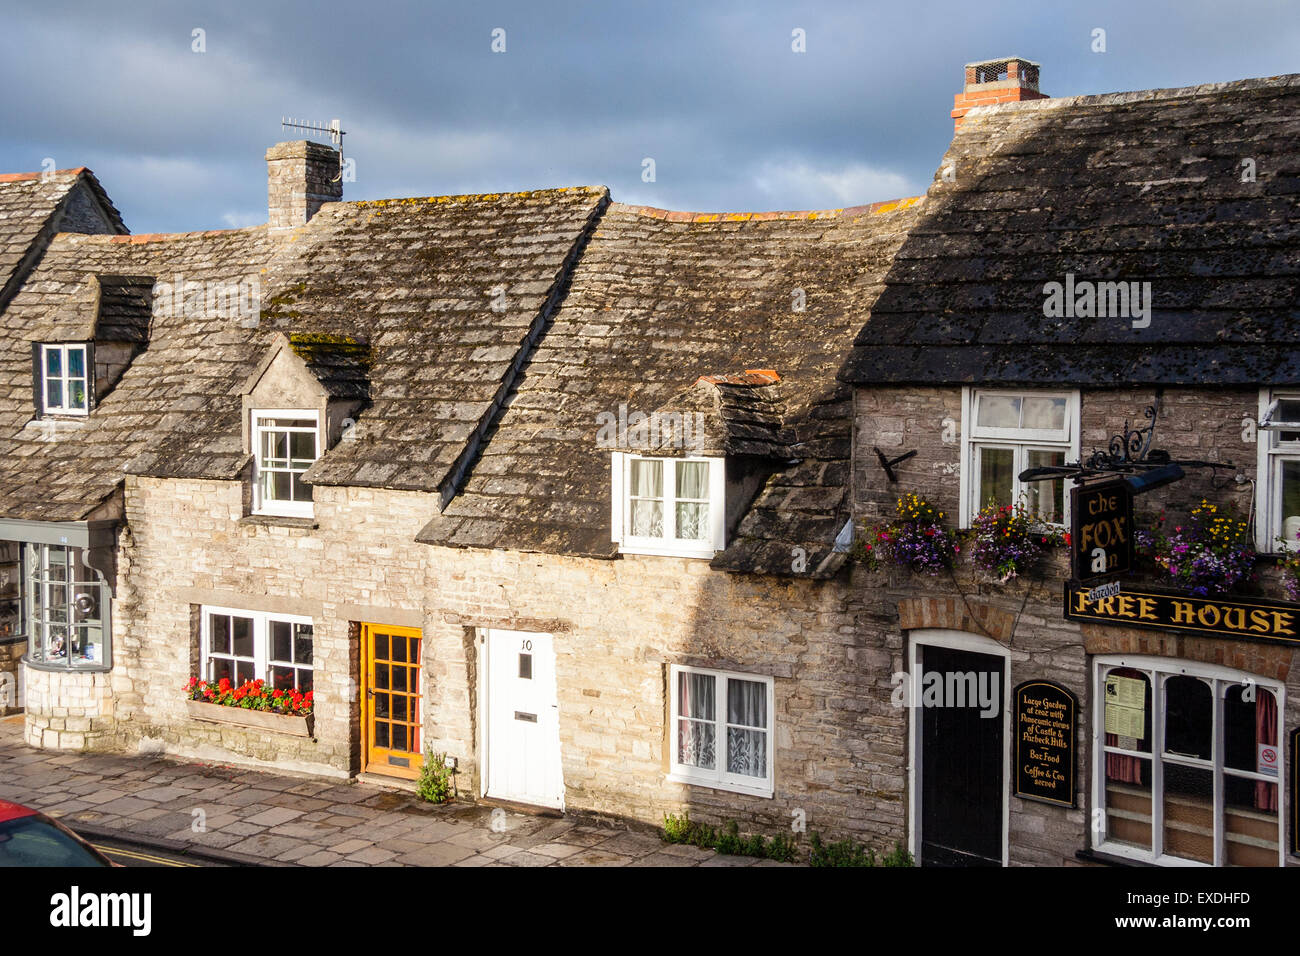 Typical old world English village scene, row of cottages with uneven roofs, Corfe, Dorset, dark skies, view along - Stock Image